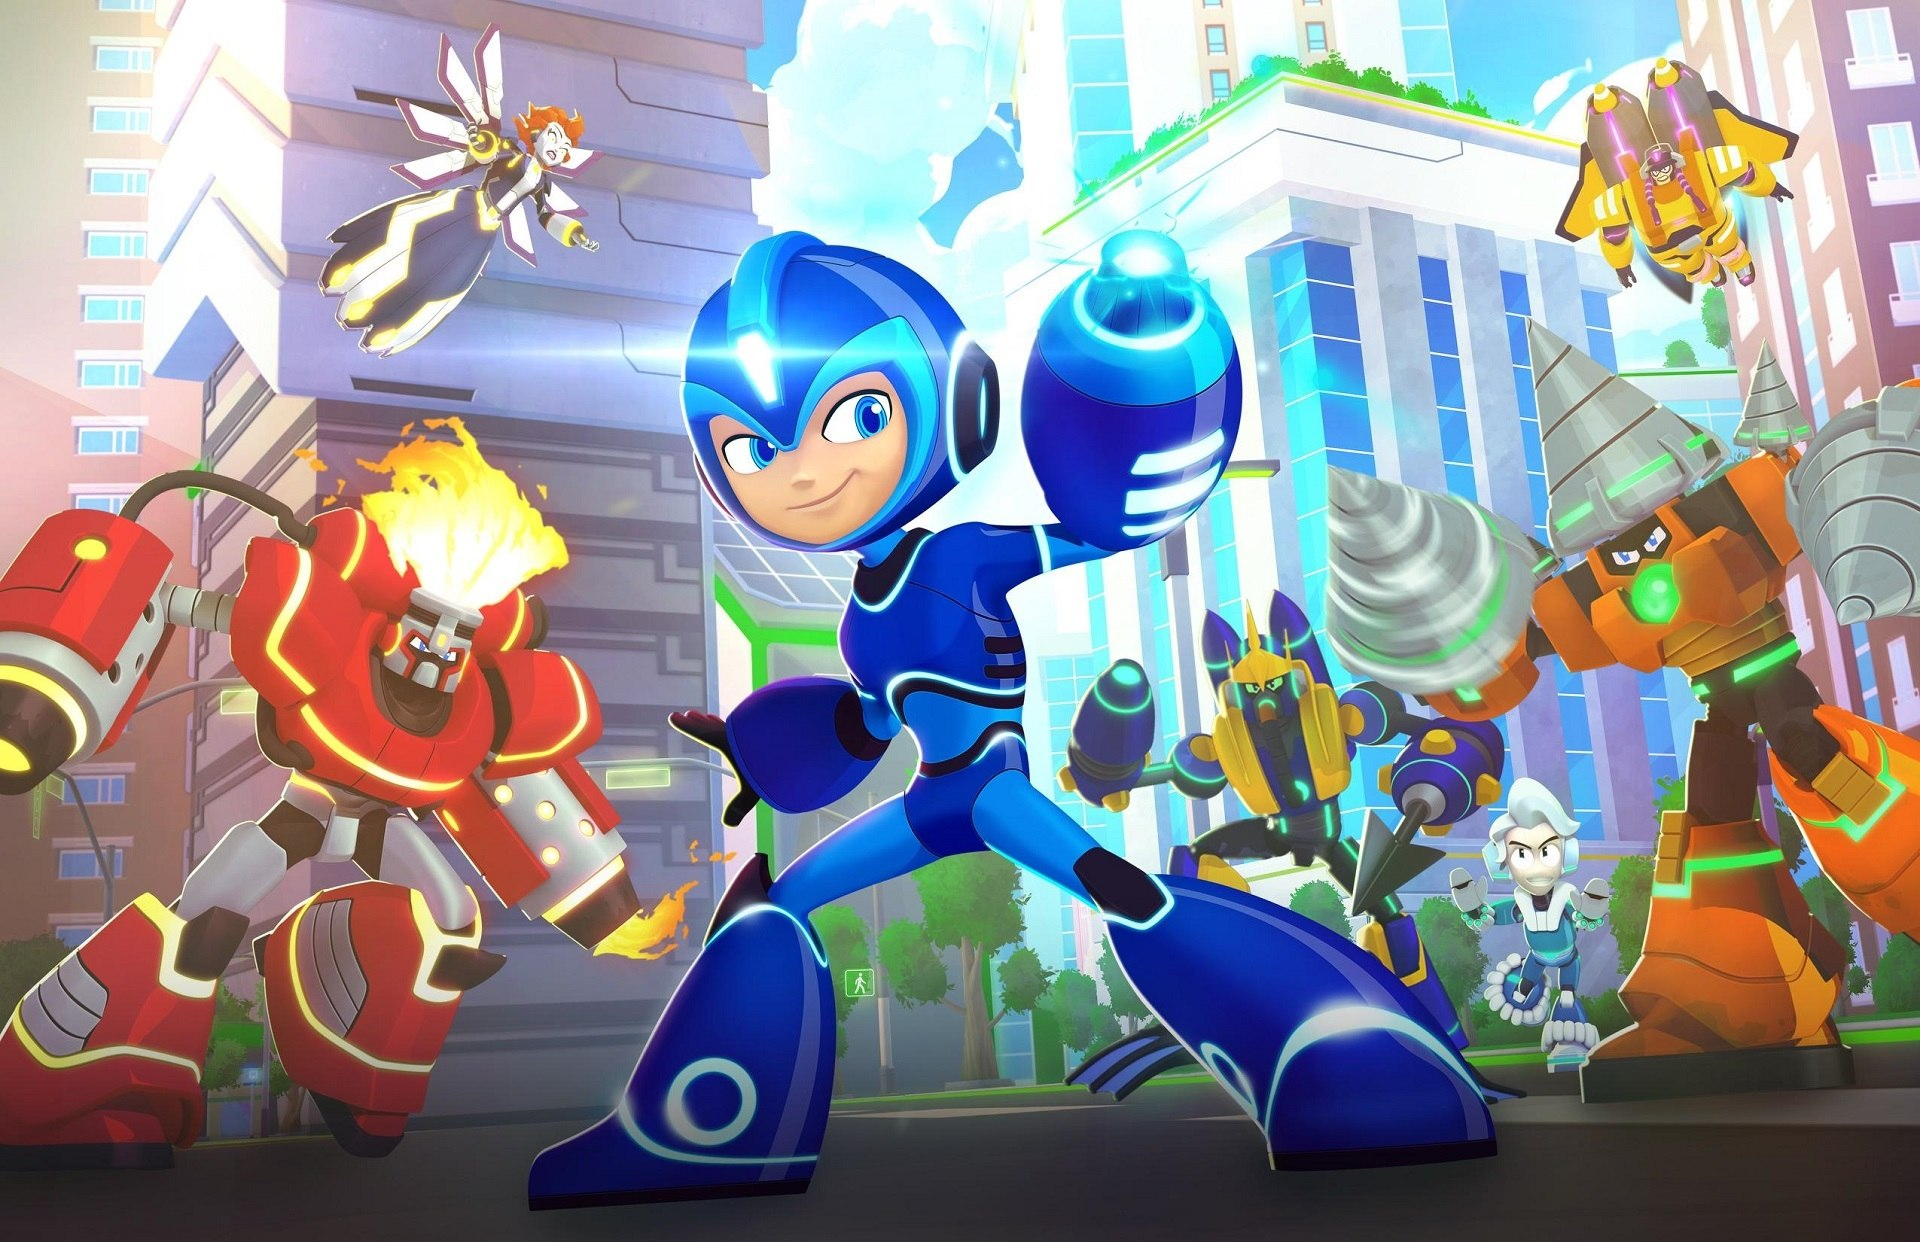 'Mega Man: Fully Charged' trailer is a blast from the past